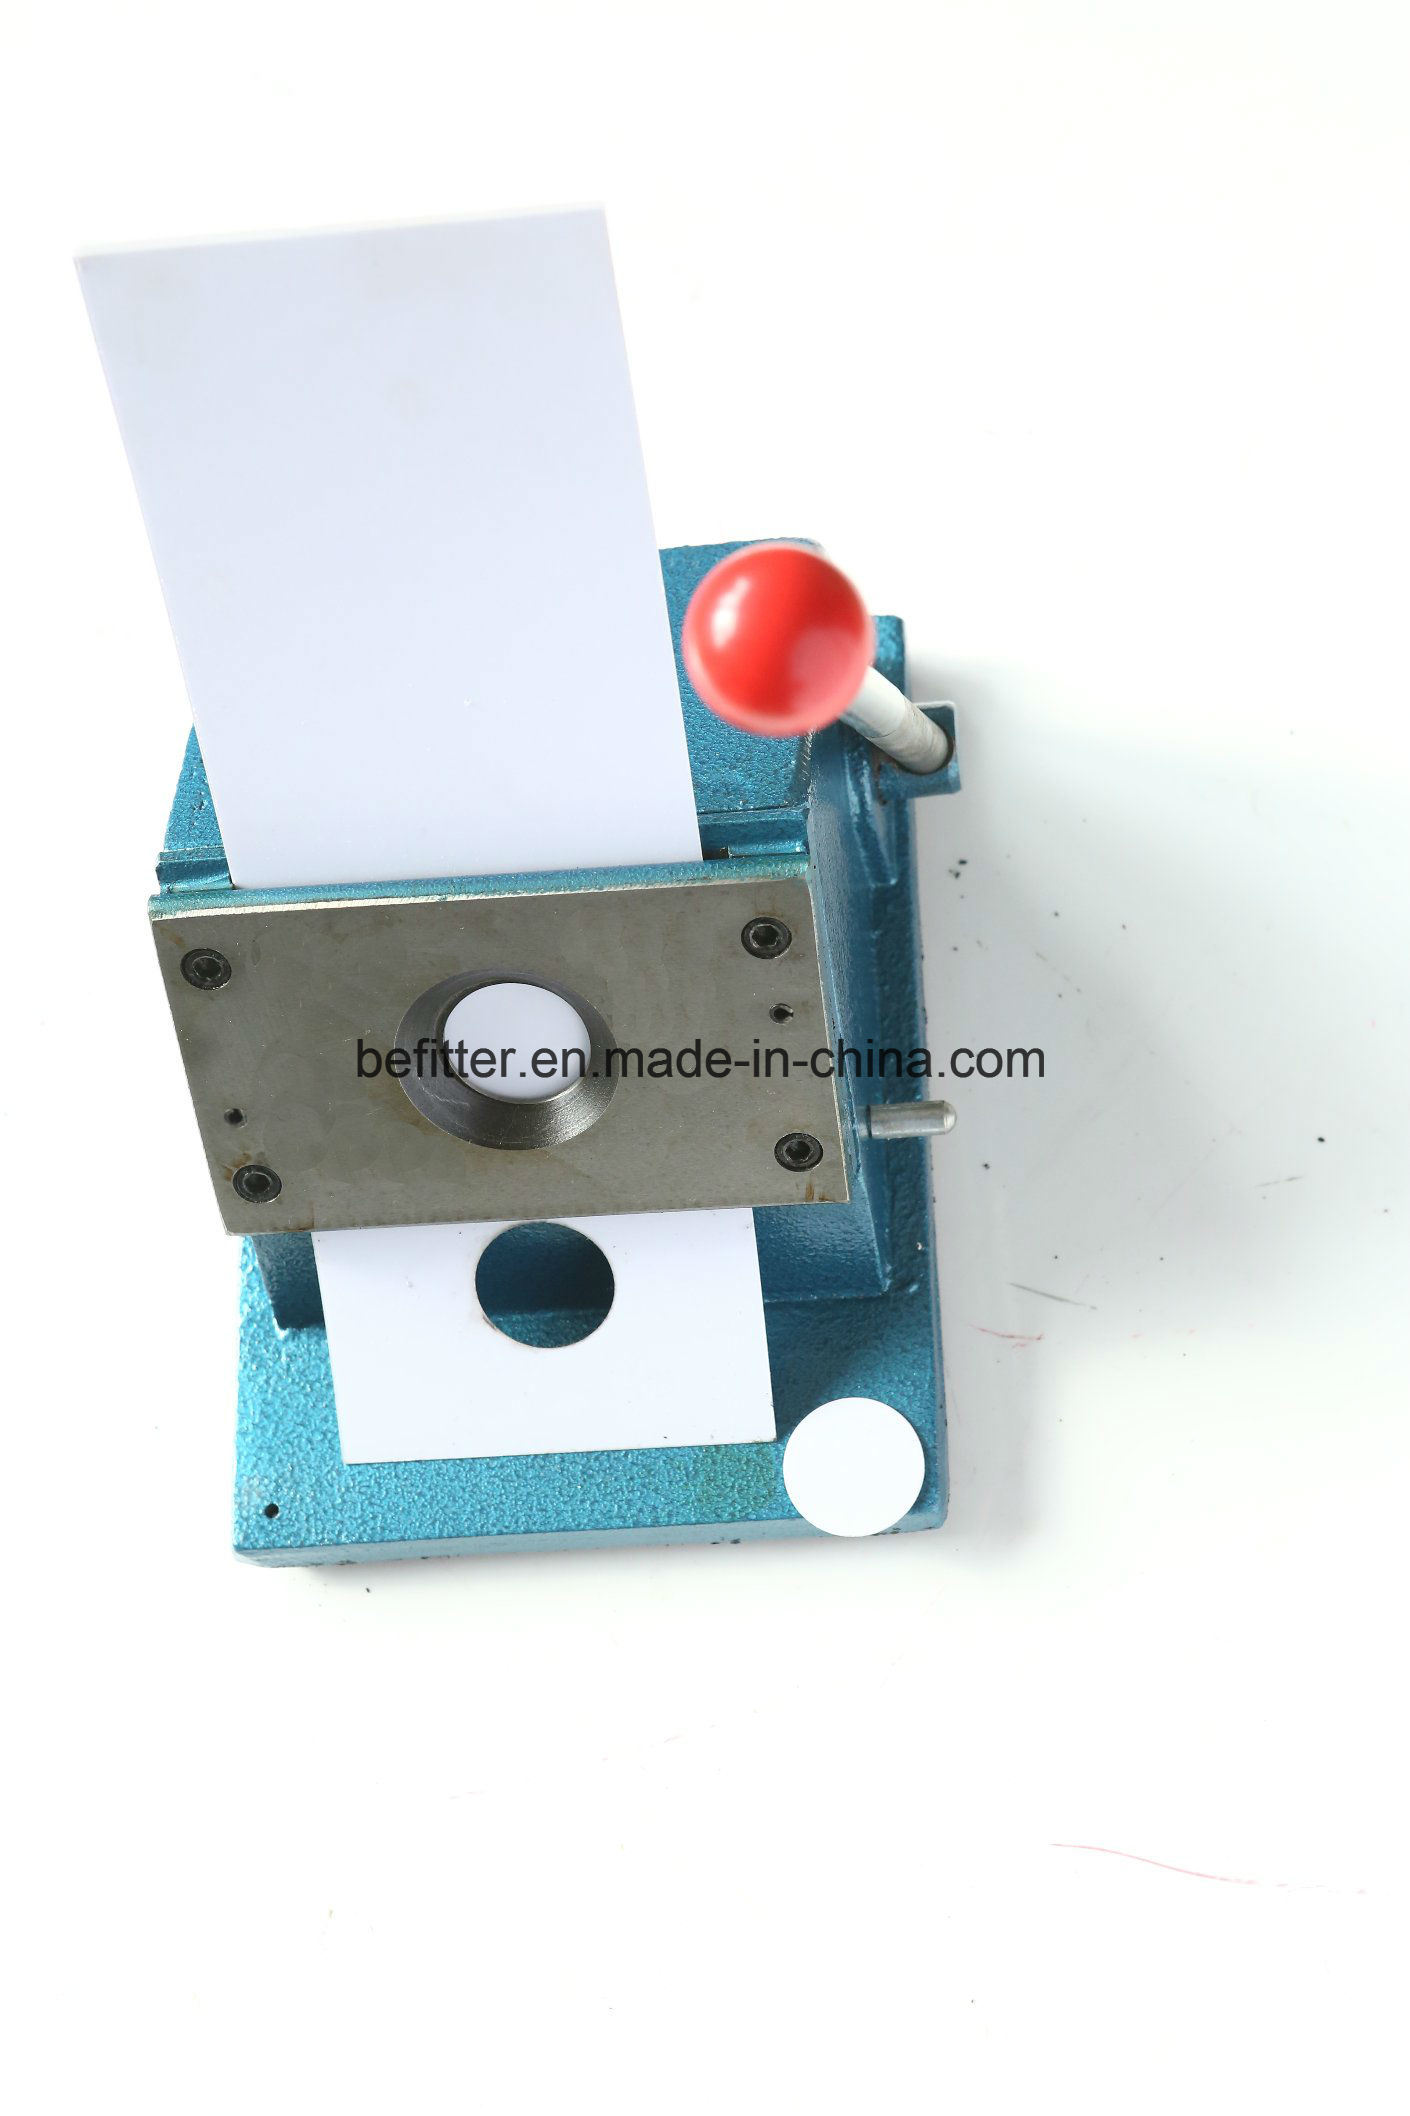 D-010 Name Card Cutter / business card cutter by hand